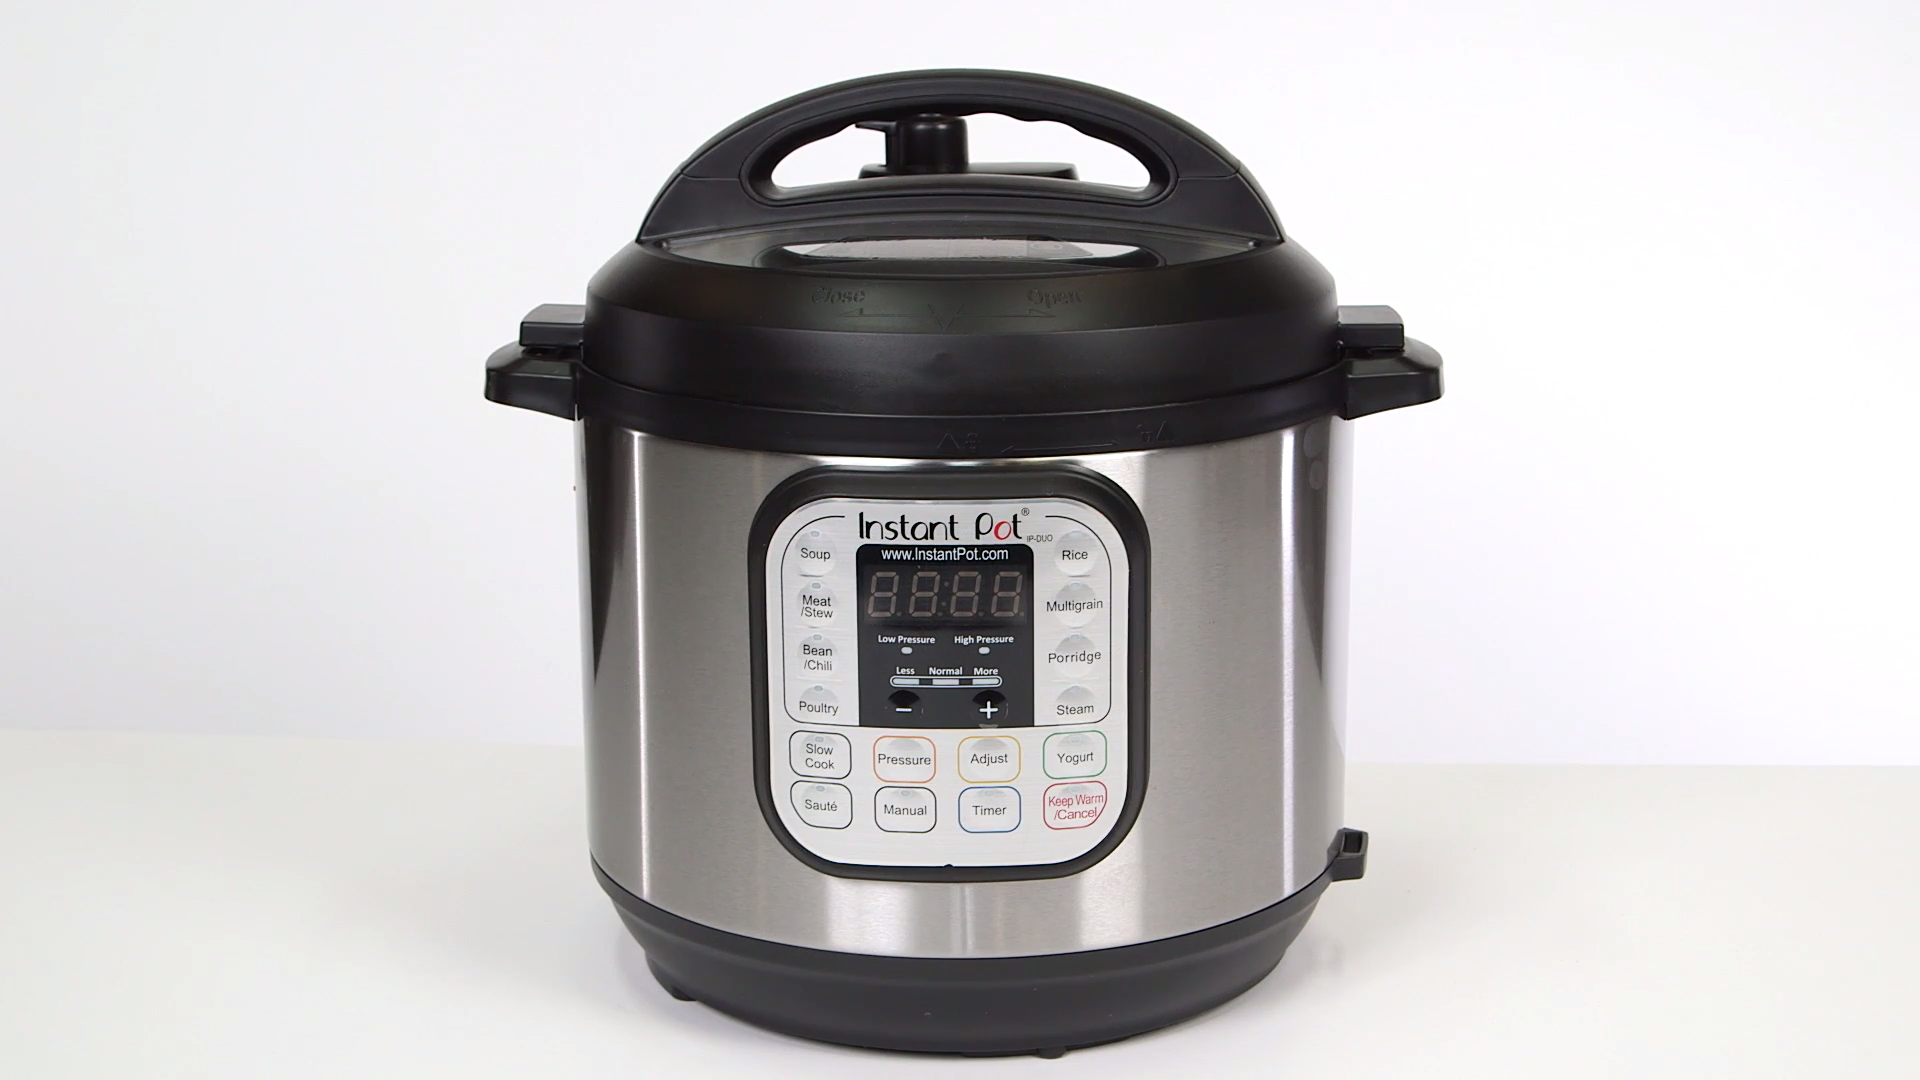 5 Things You Should Not Do with Your Instant Pot